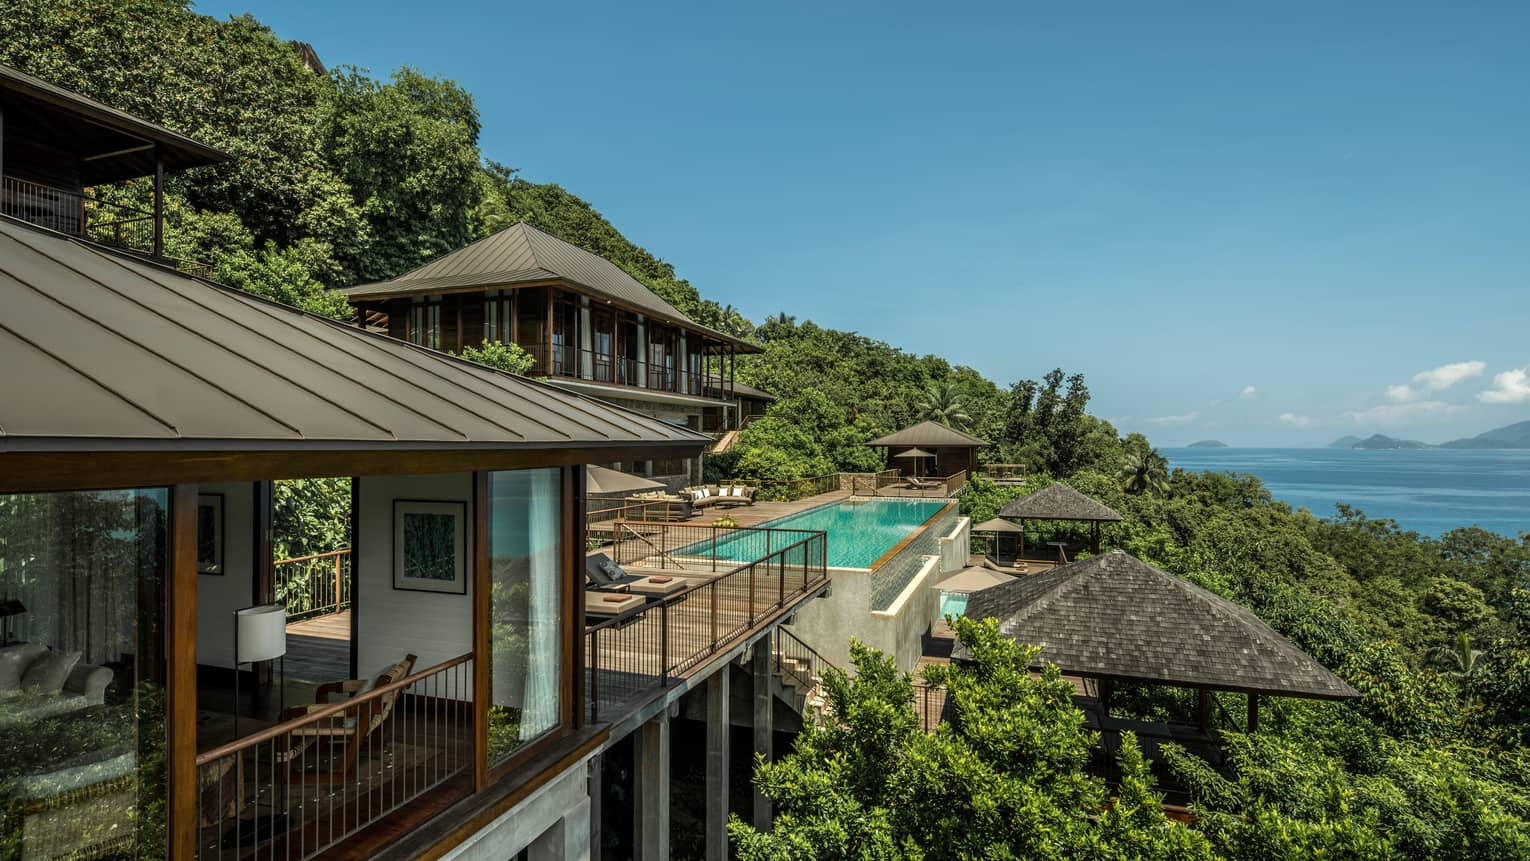 Four-Bedroom Residence Villa roofs, patios amid trees on mountain, ocean below